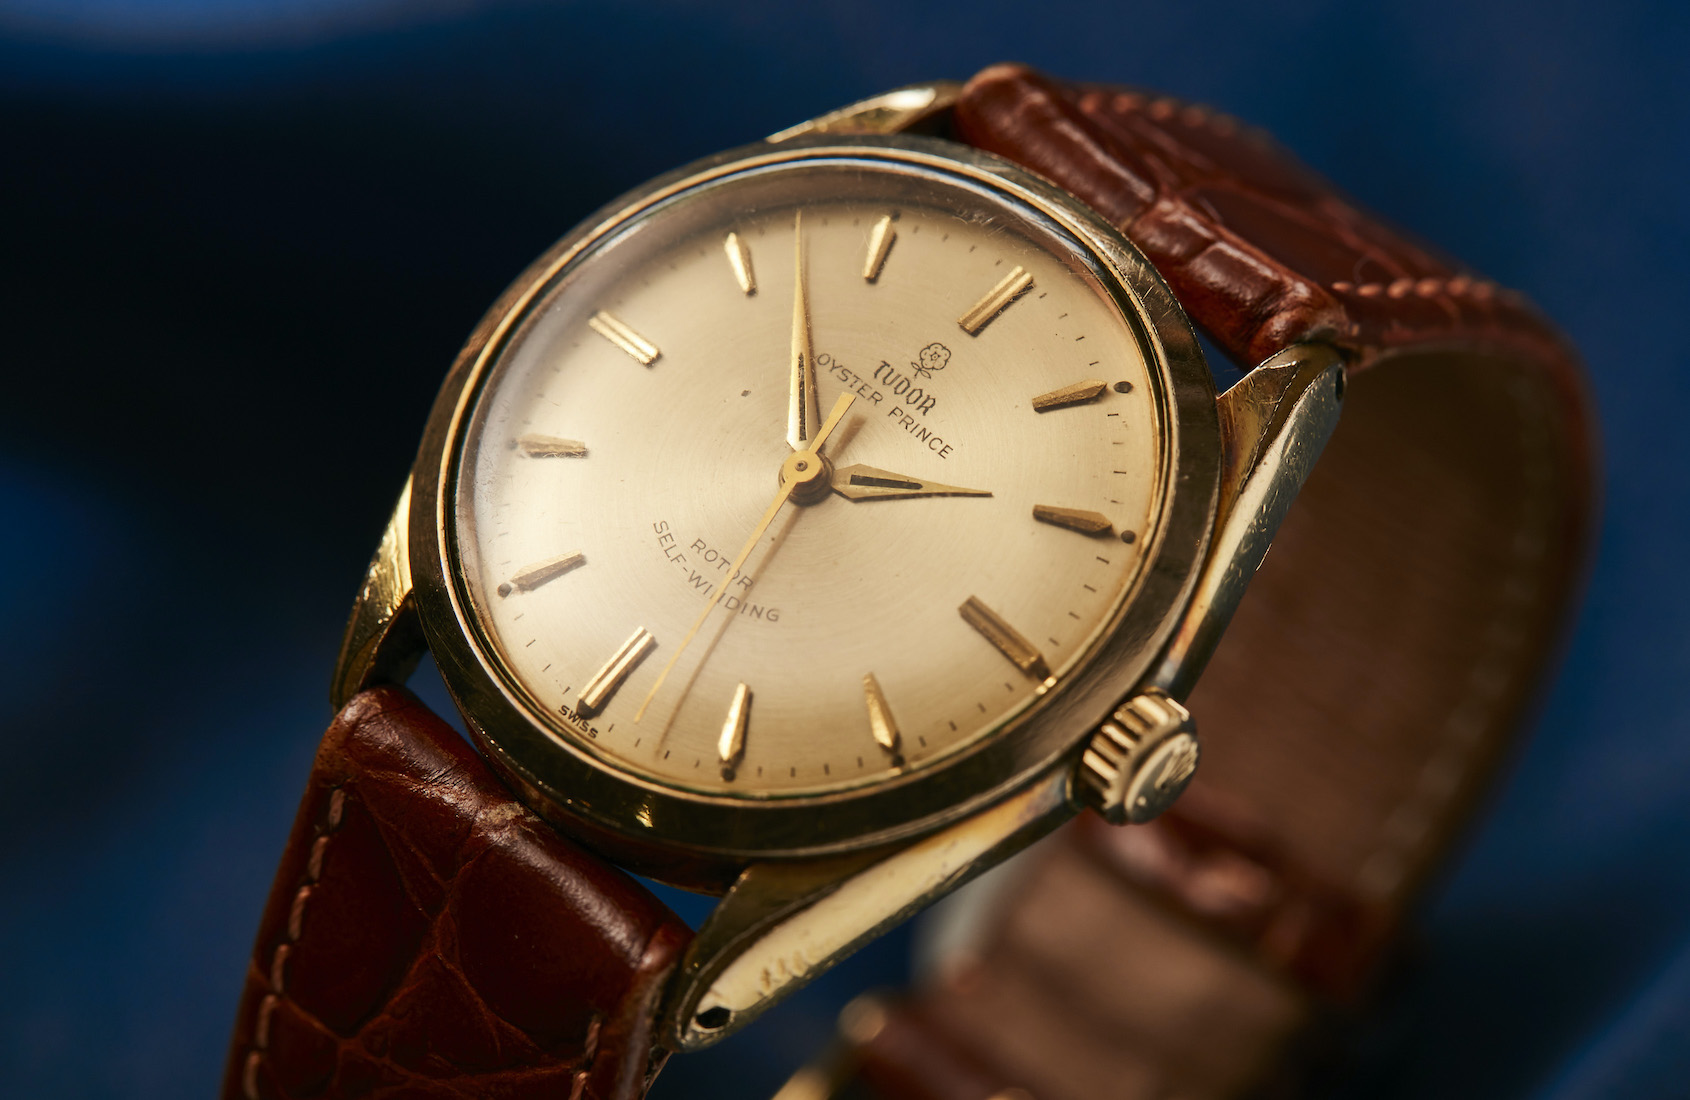 Tudor Oyster Prince review